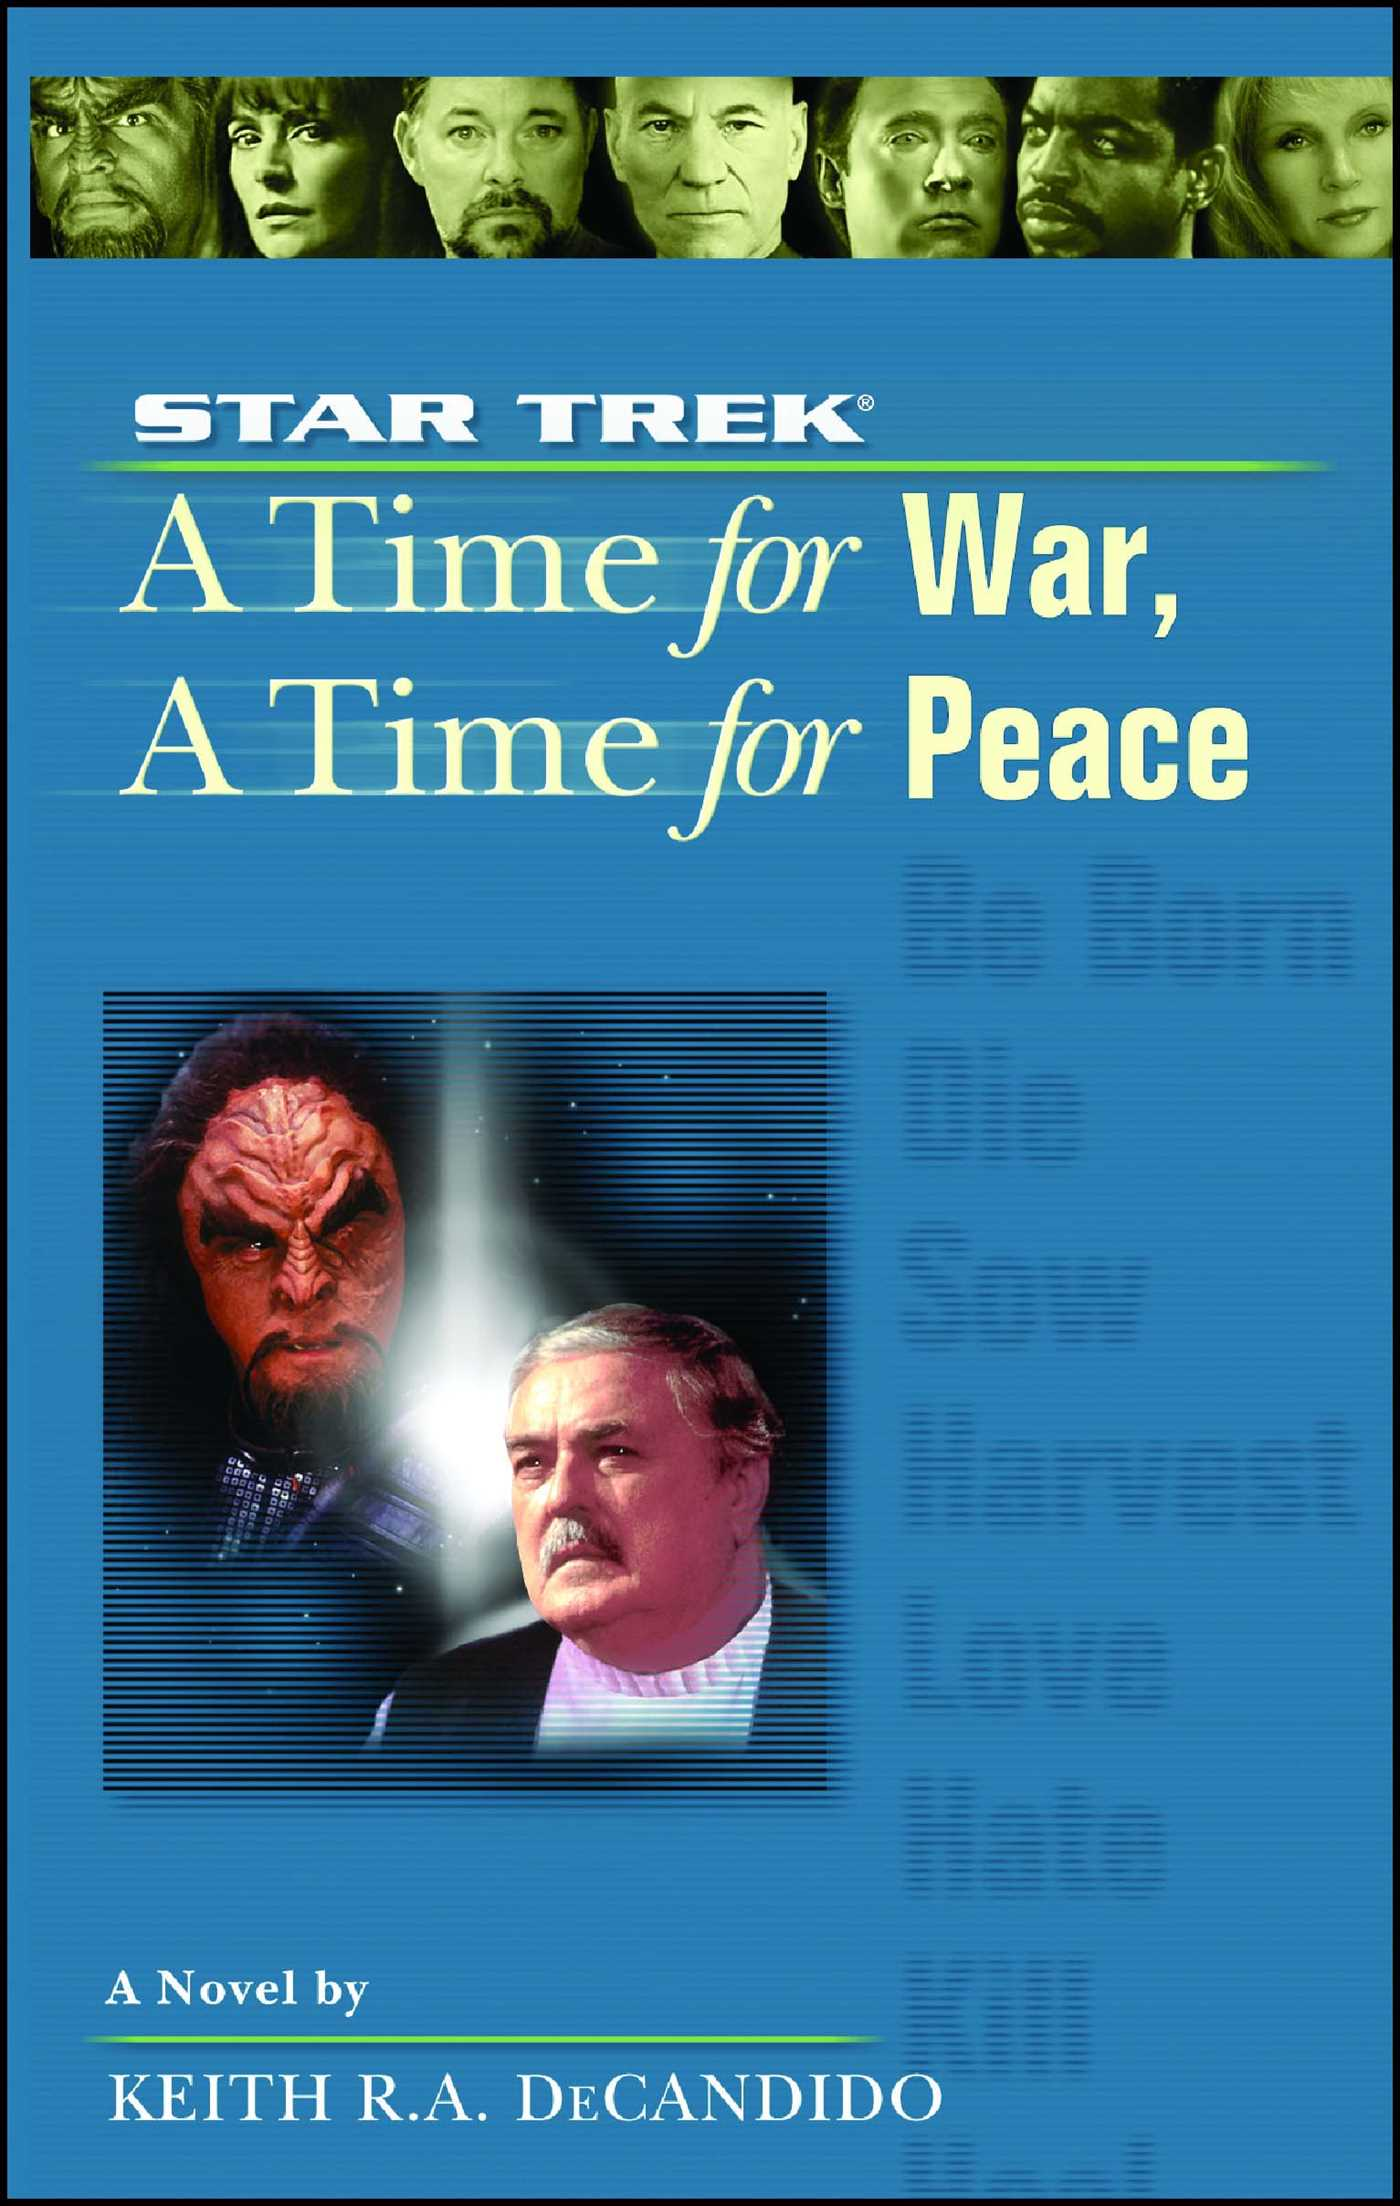 A star trek the next generation time 9 a time for war a time for peace 9780743499972 hr